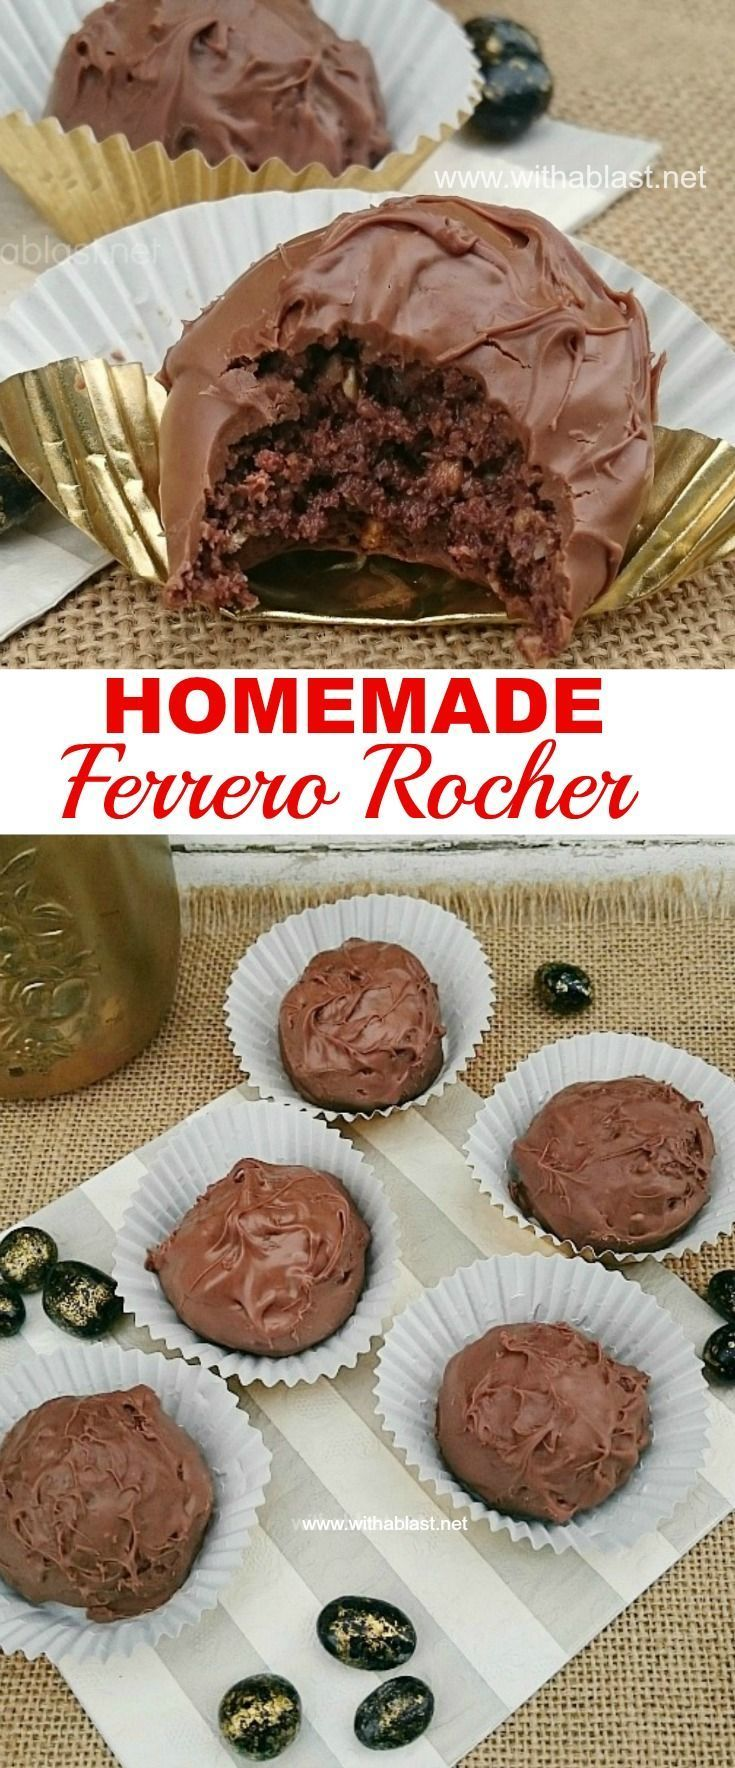 Make these worldwide popular Ferrero Rocher treats at home using only FOUR ingredients - quick and easy ! #copycatrecipe #FerreroRocher #candyrecipe #chocolatetreats